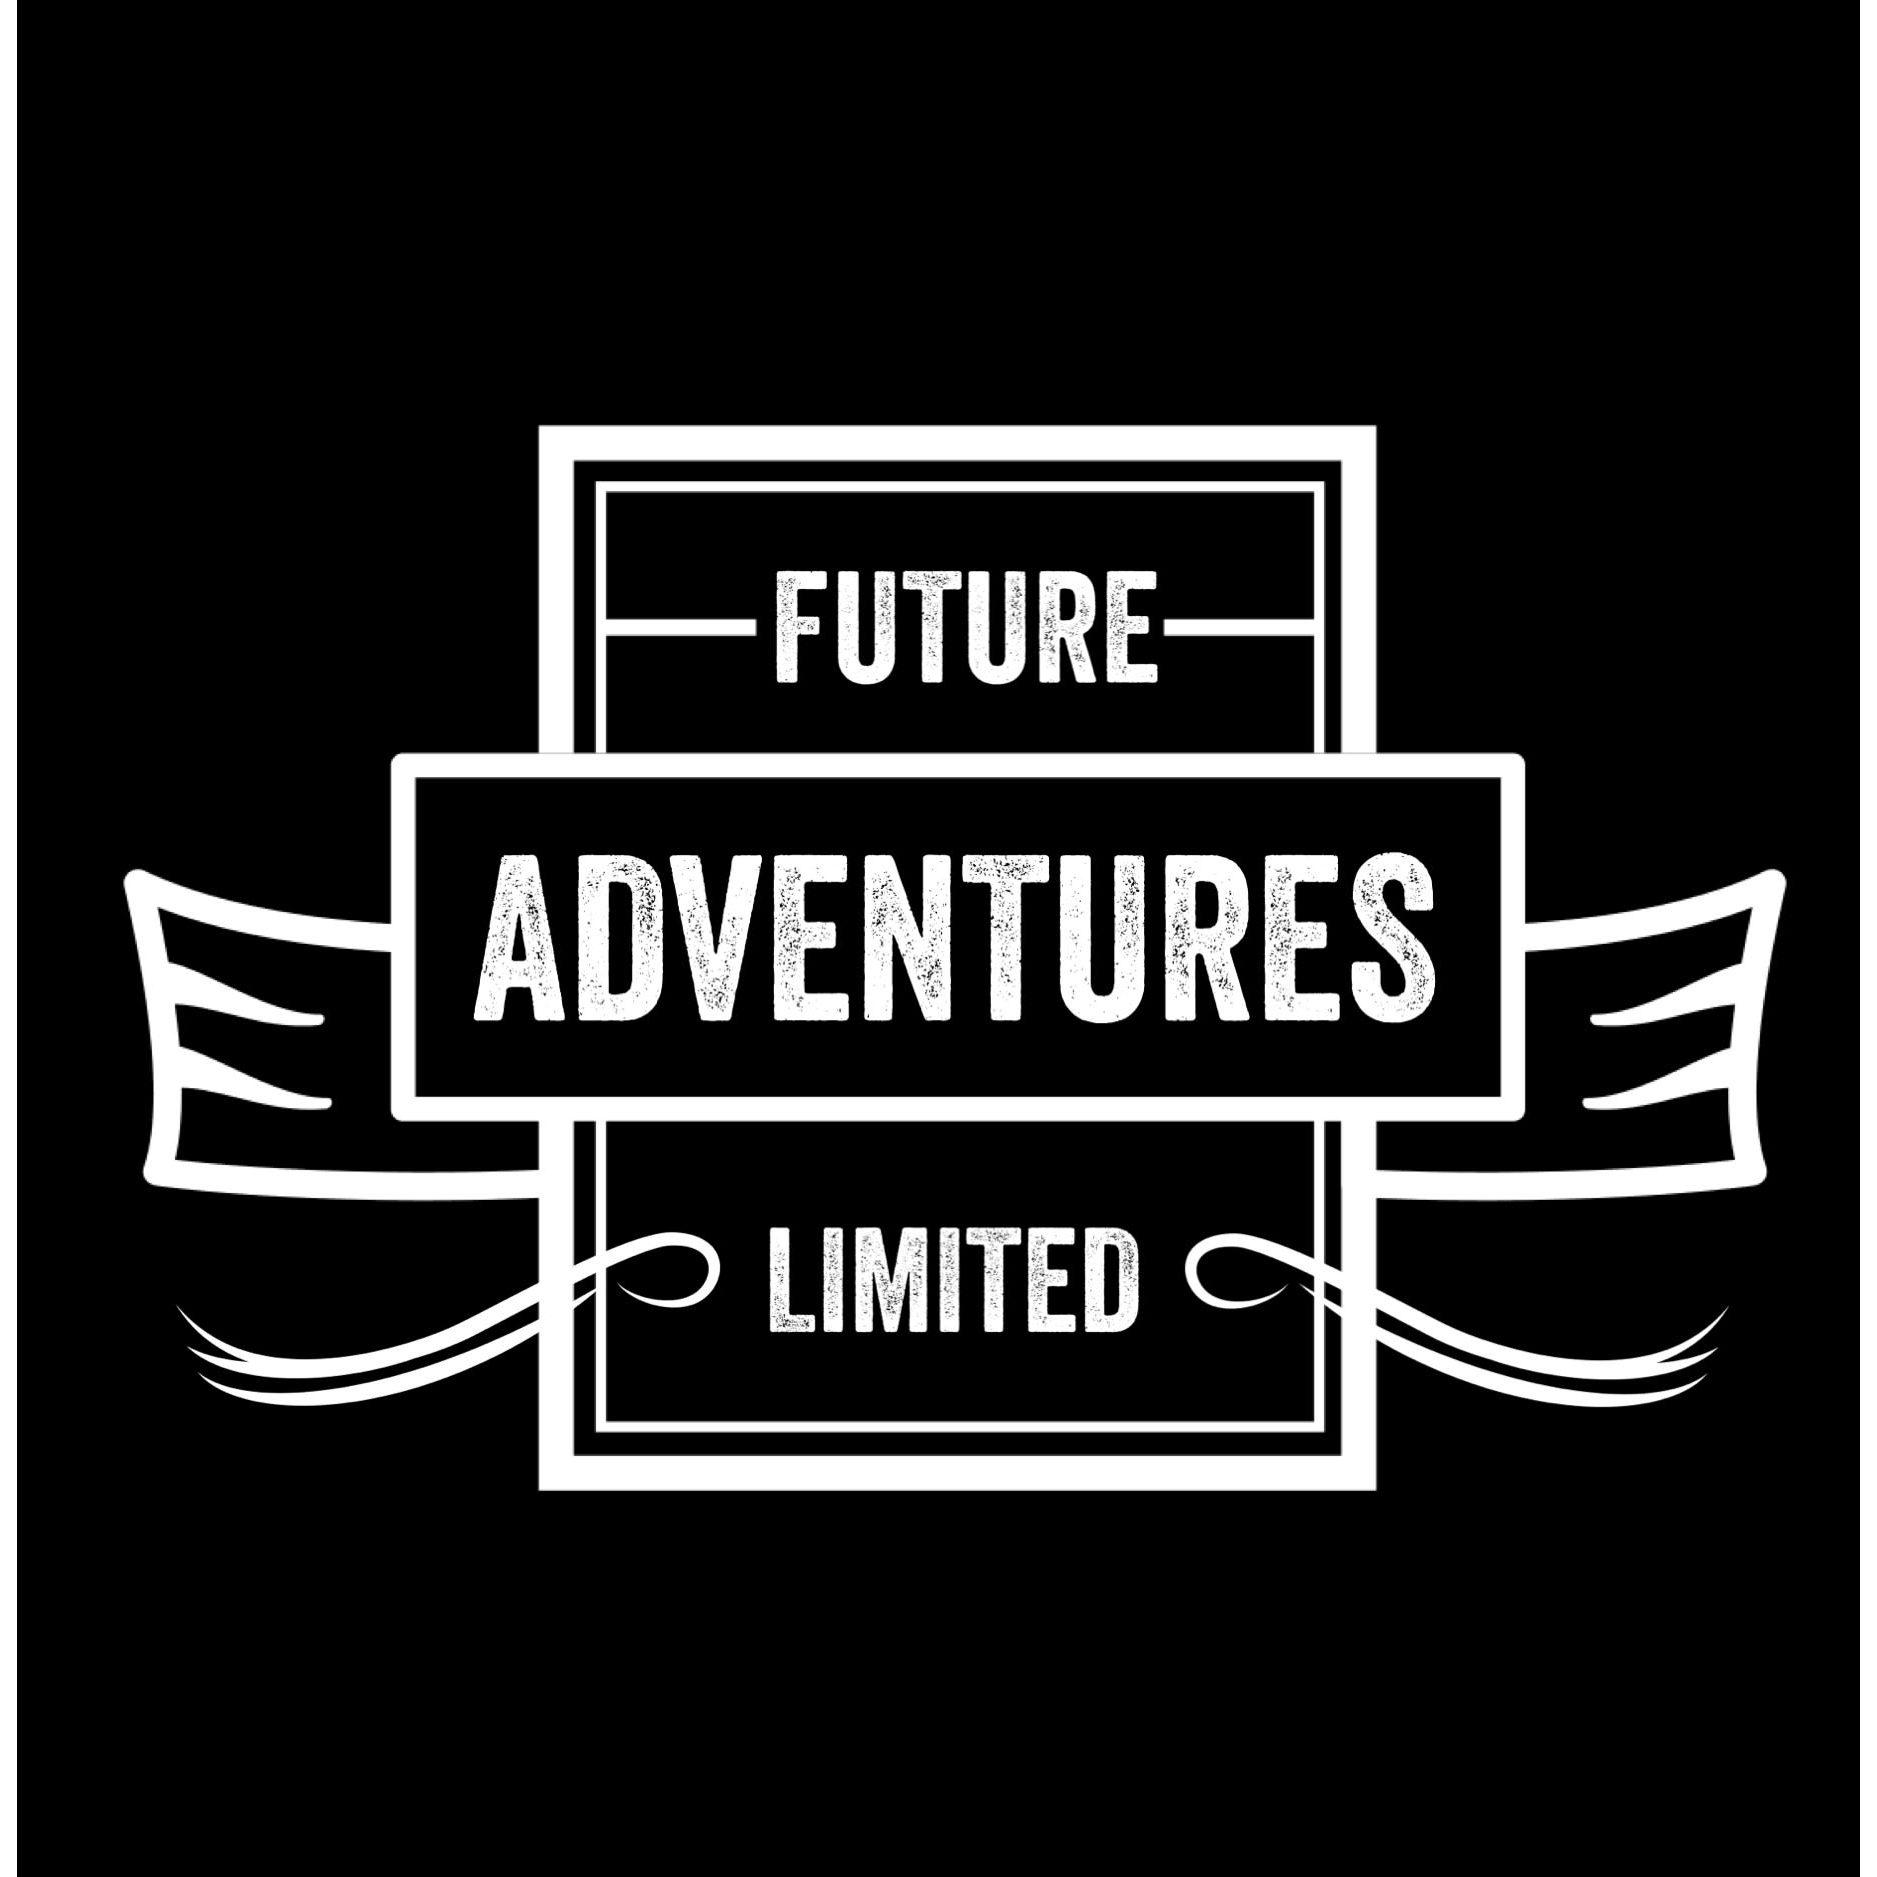 Future Adventures Ltd